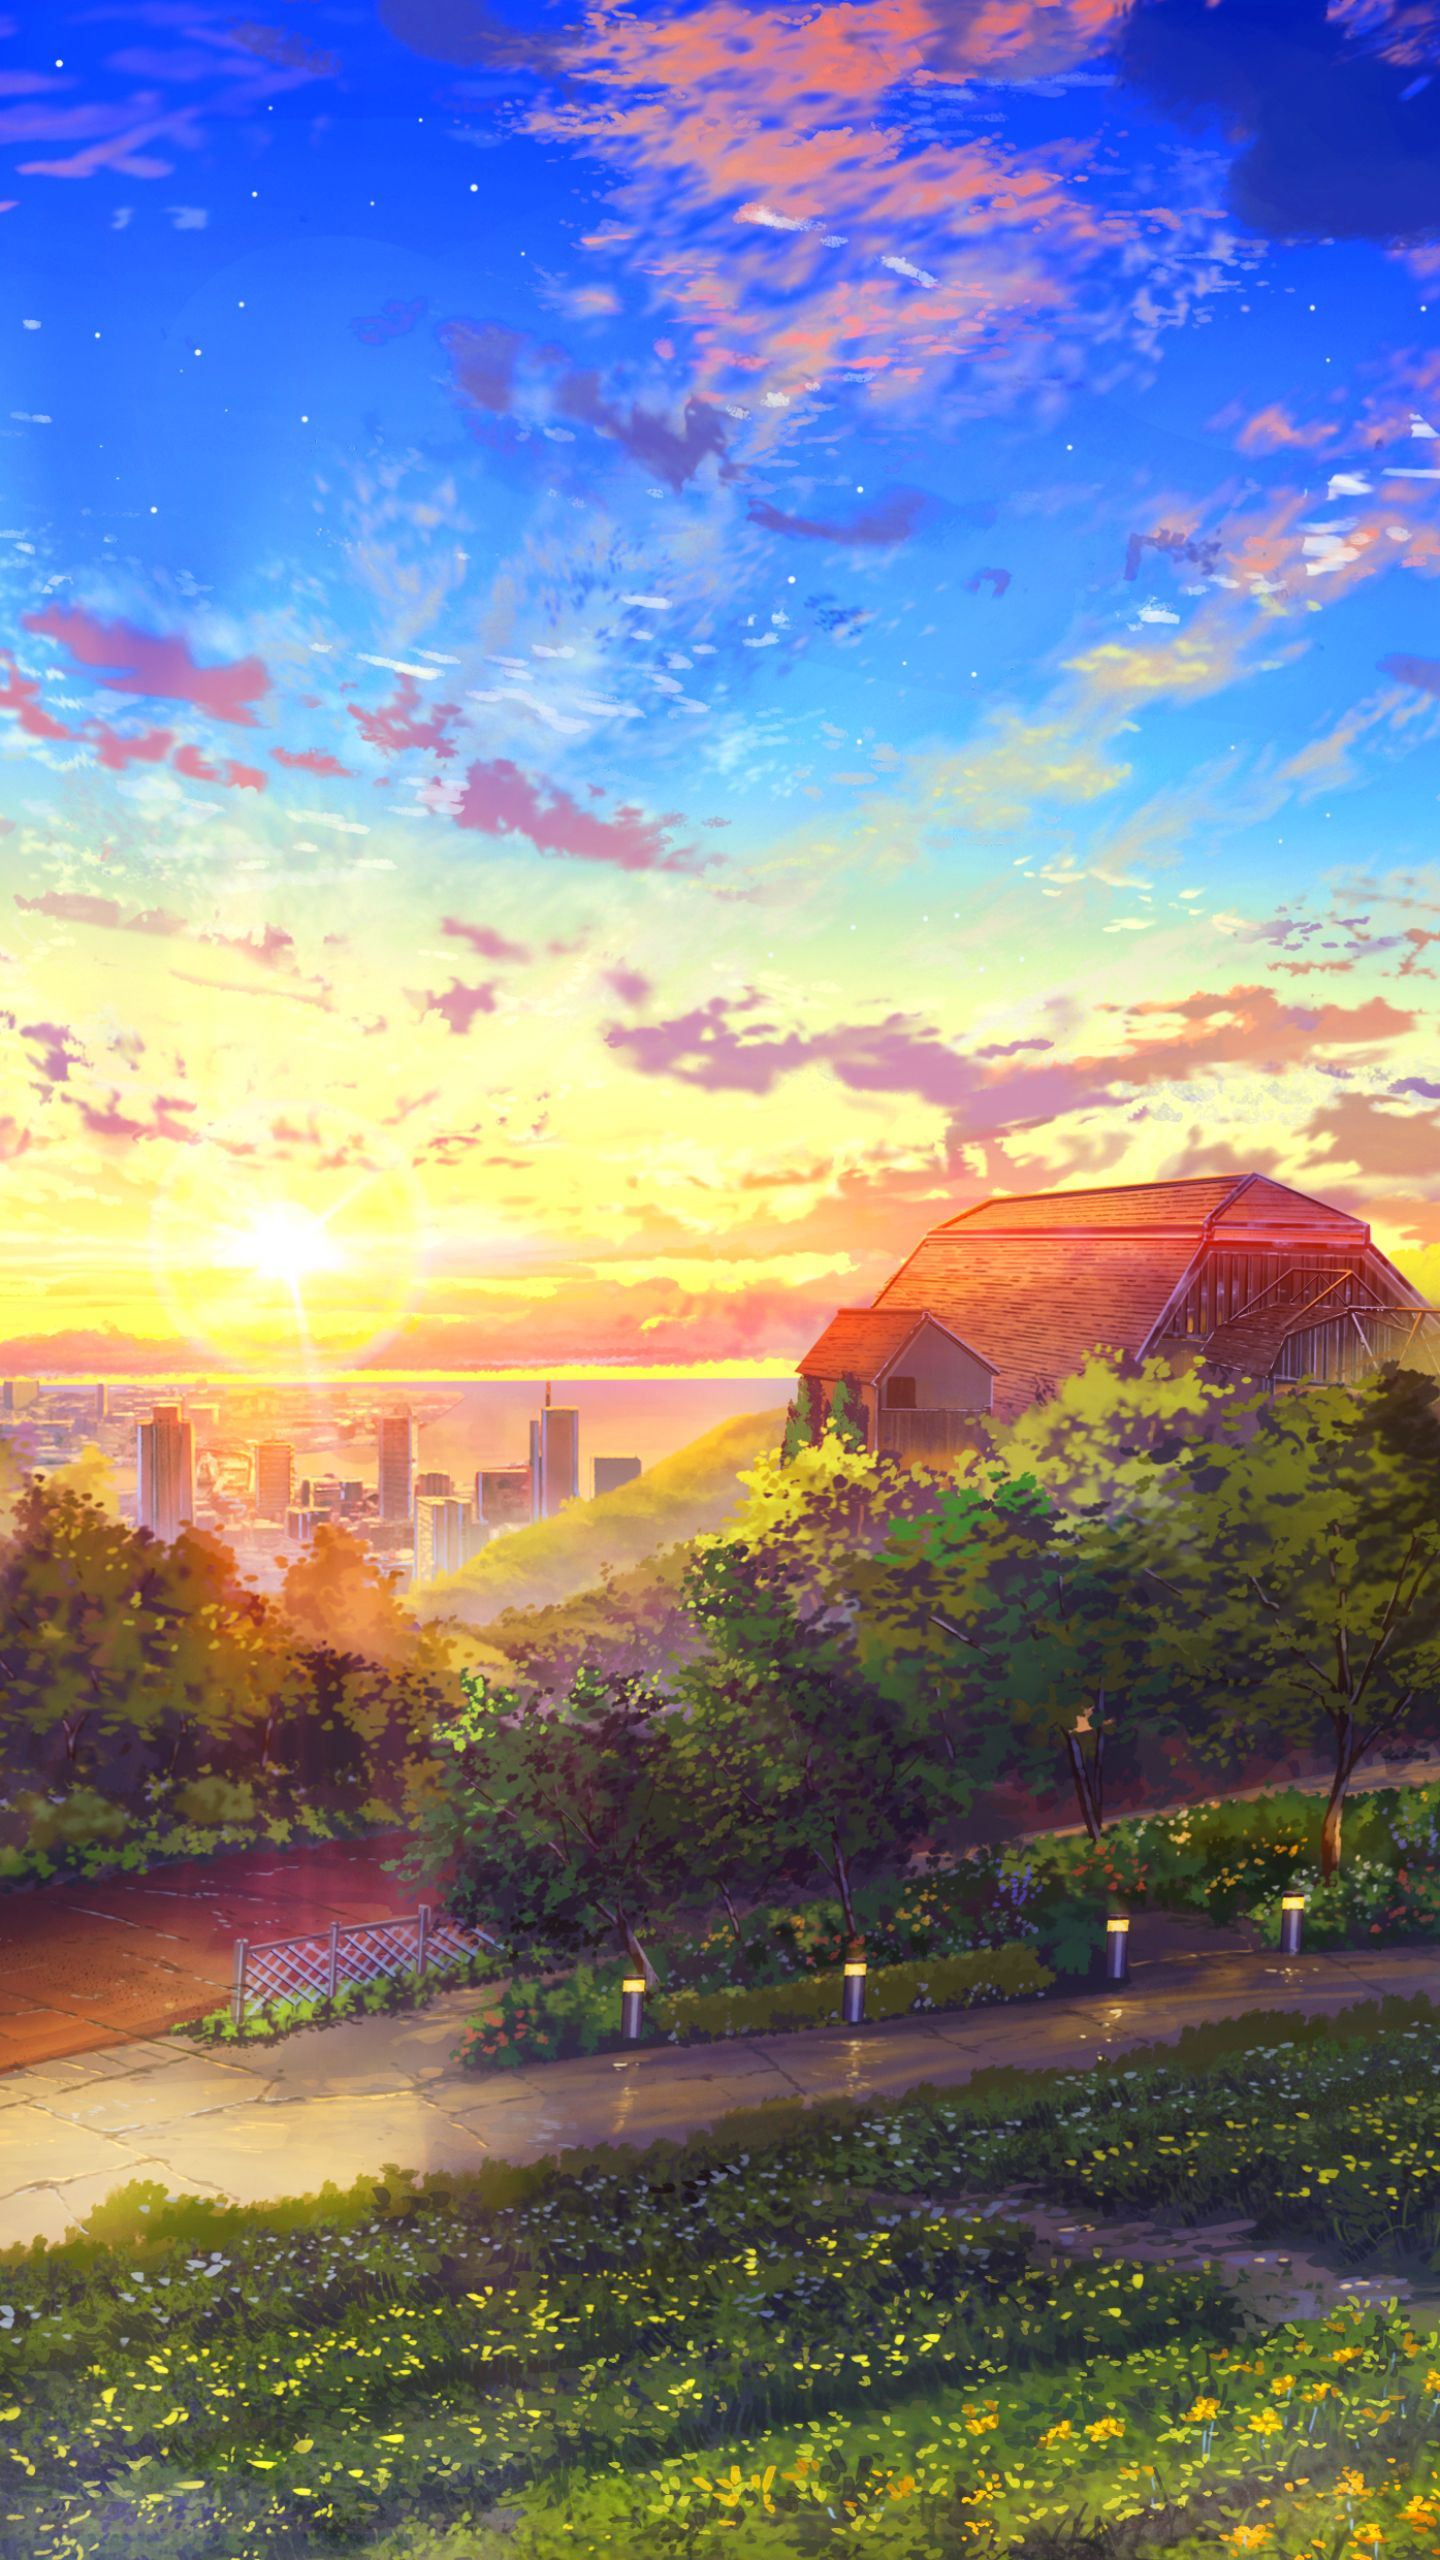 Anime Landscape Wallpaper Phone Anime Landscape 1440x2560 Wallpaper Id 793667 Mobile Abyss Anime Scenery Anime Scenery Scenery Wallpaper Anime Wallpaper Live